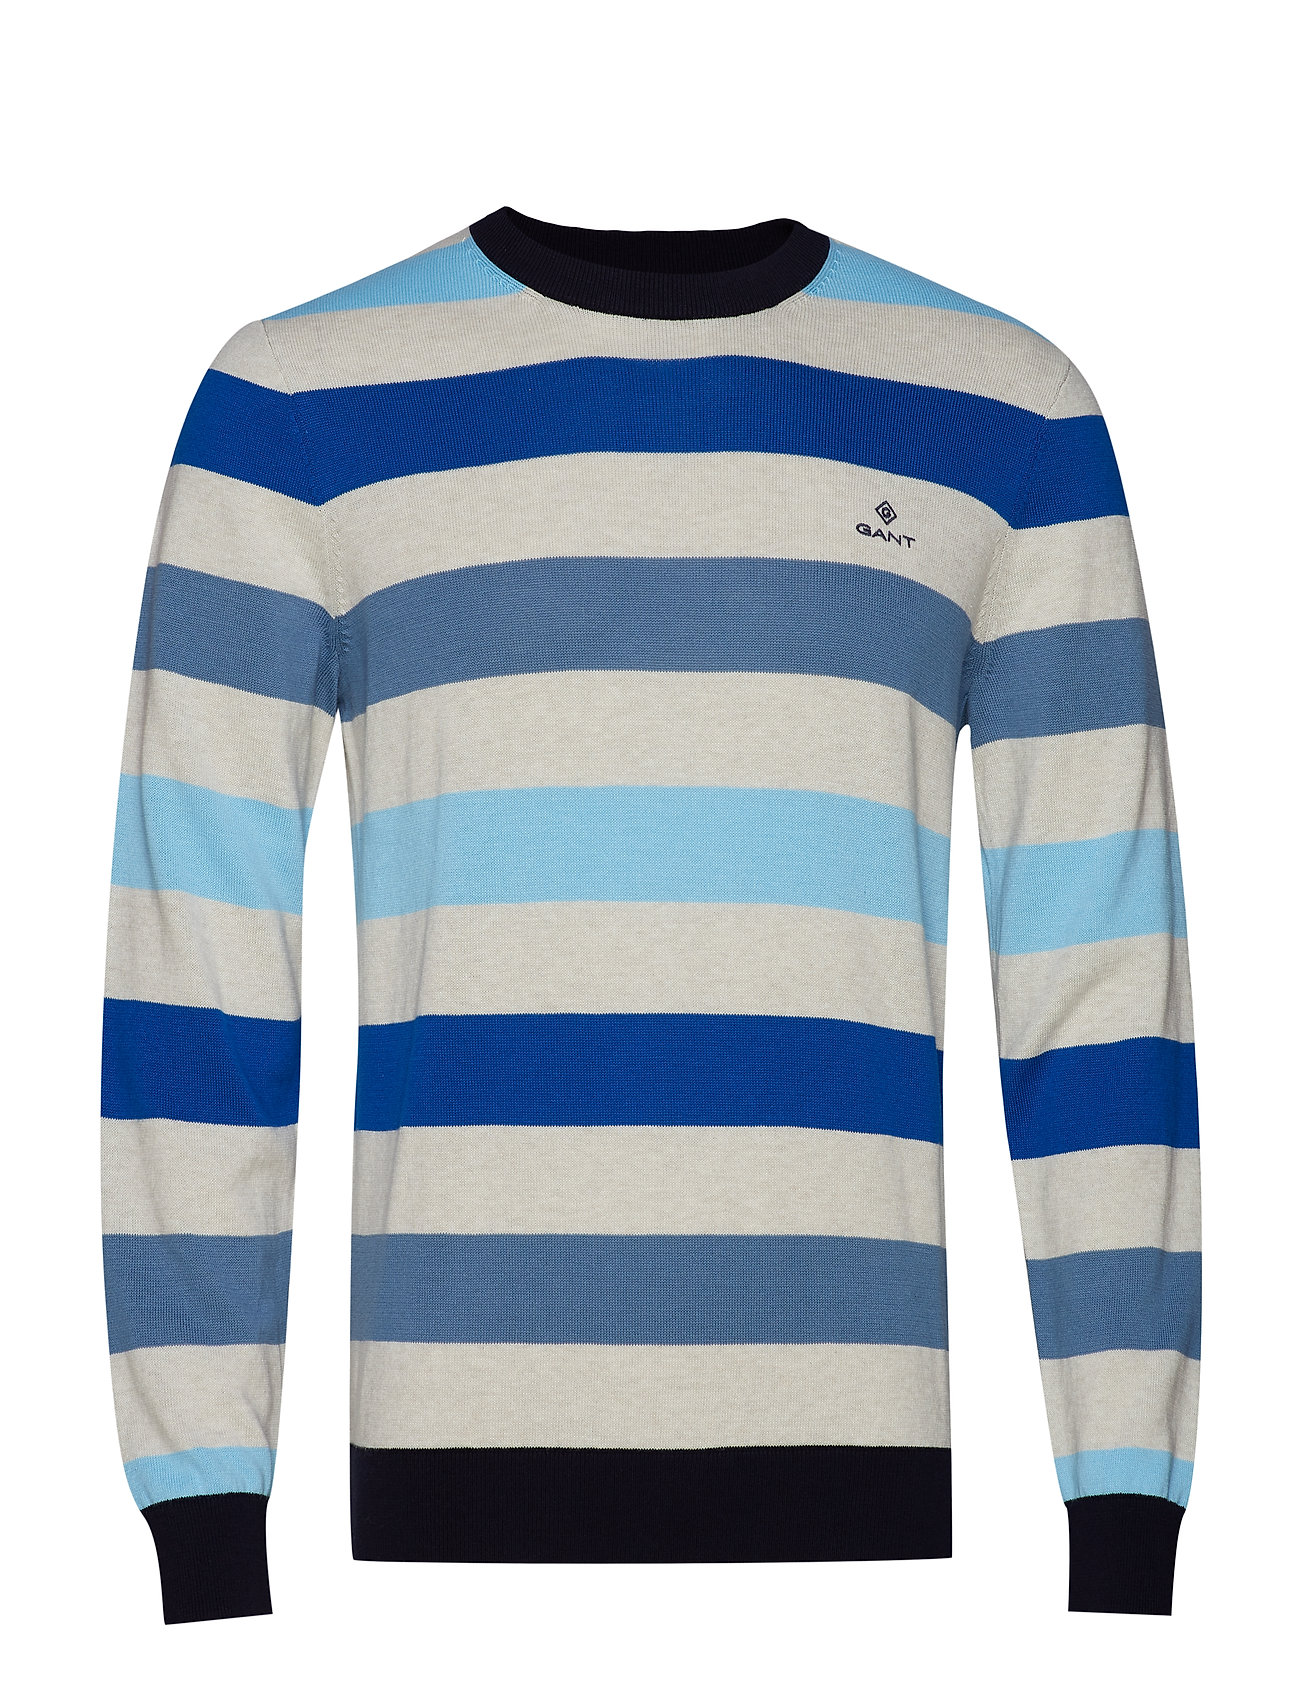 Gant D1. MULTI COLORED STRIPE CREW - CORONET BLUE